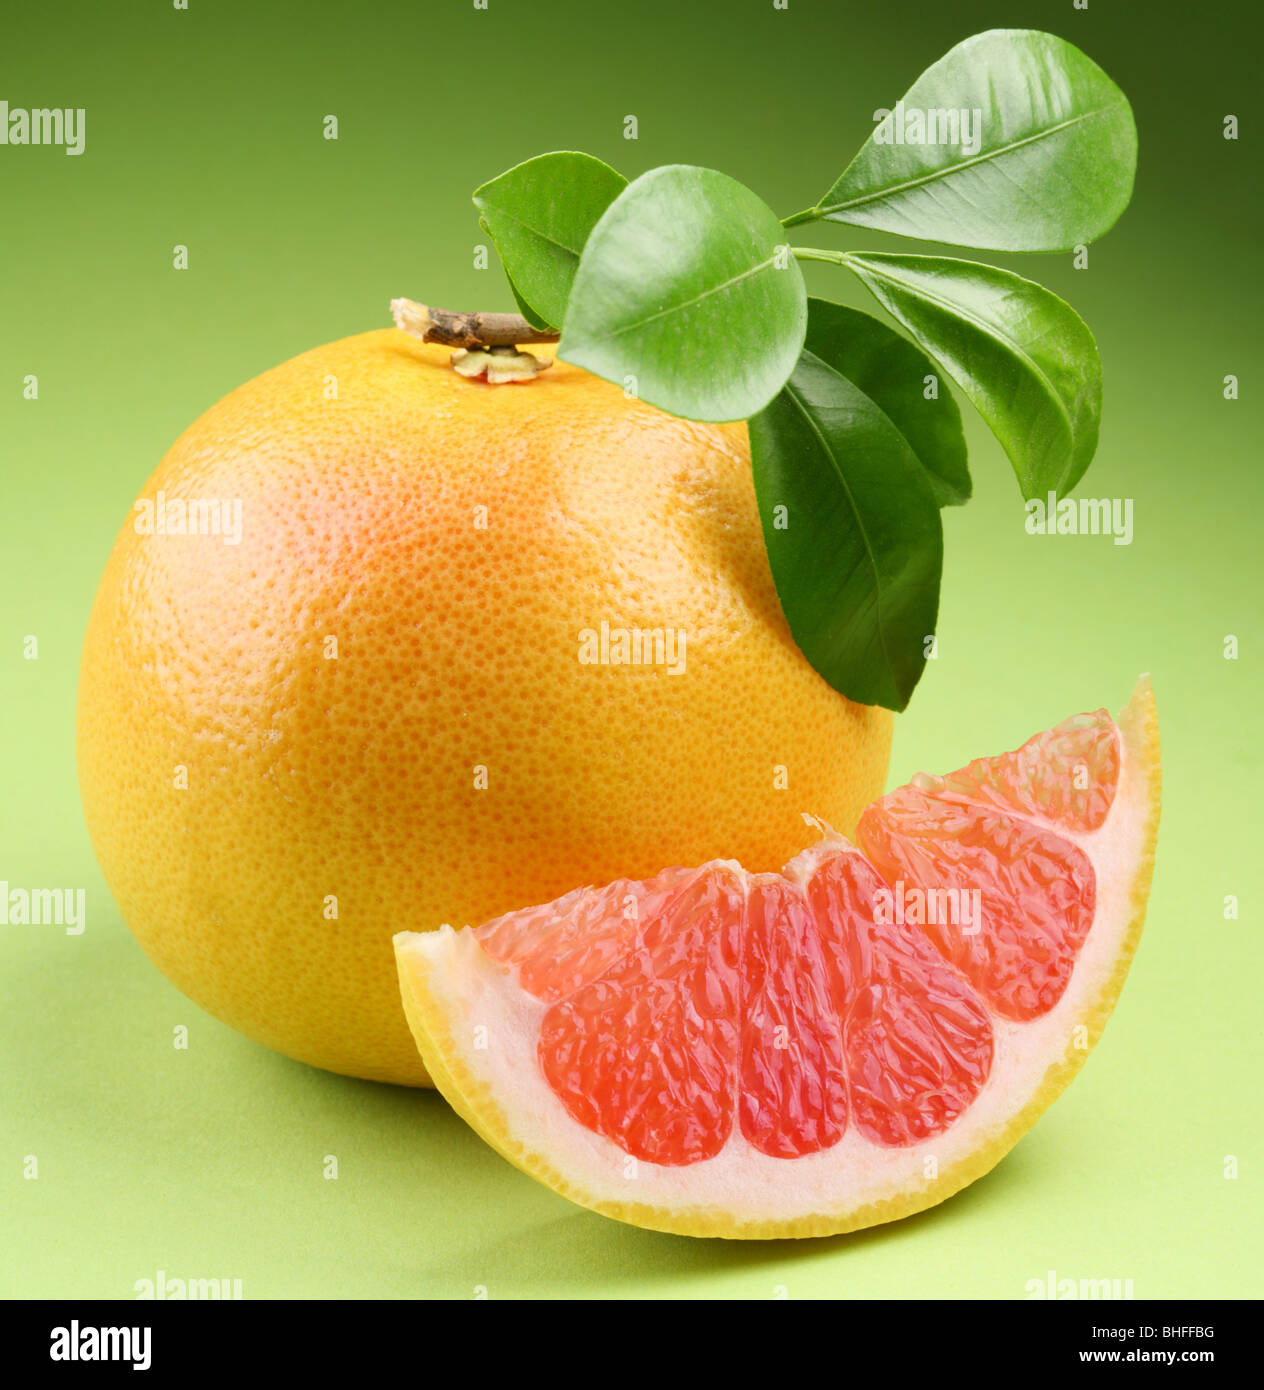 Ripe grapefruit with segment on a green background - Stock Image